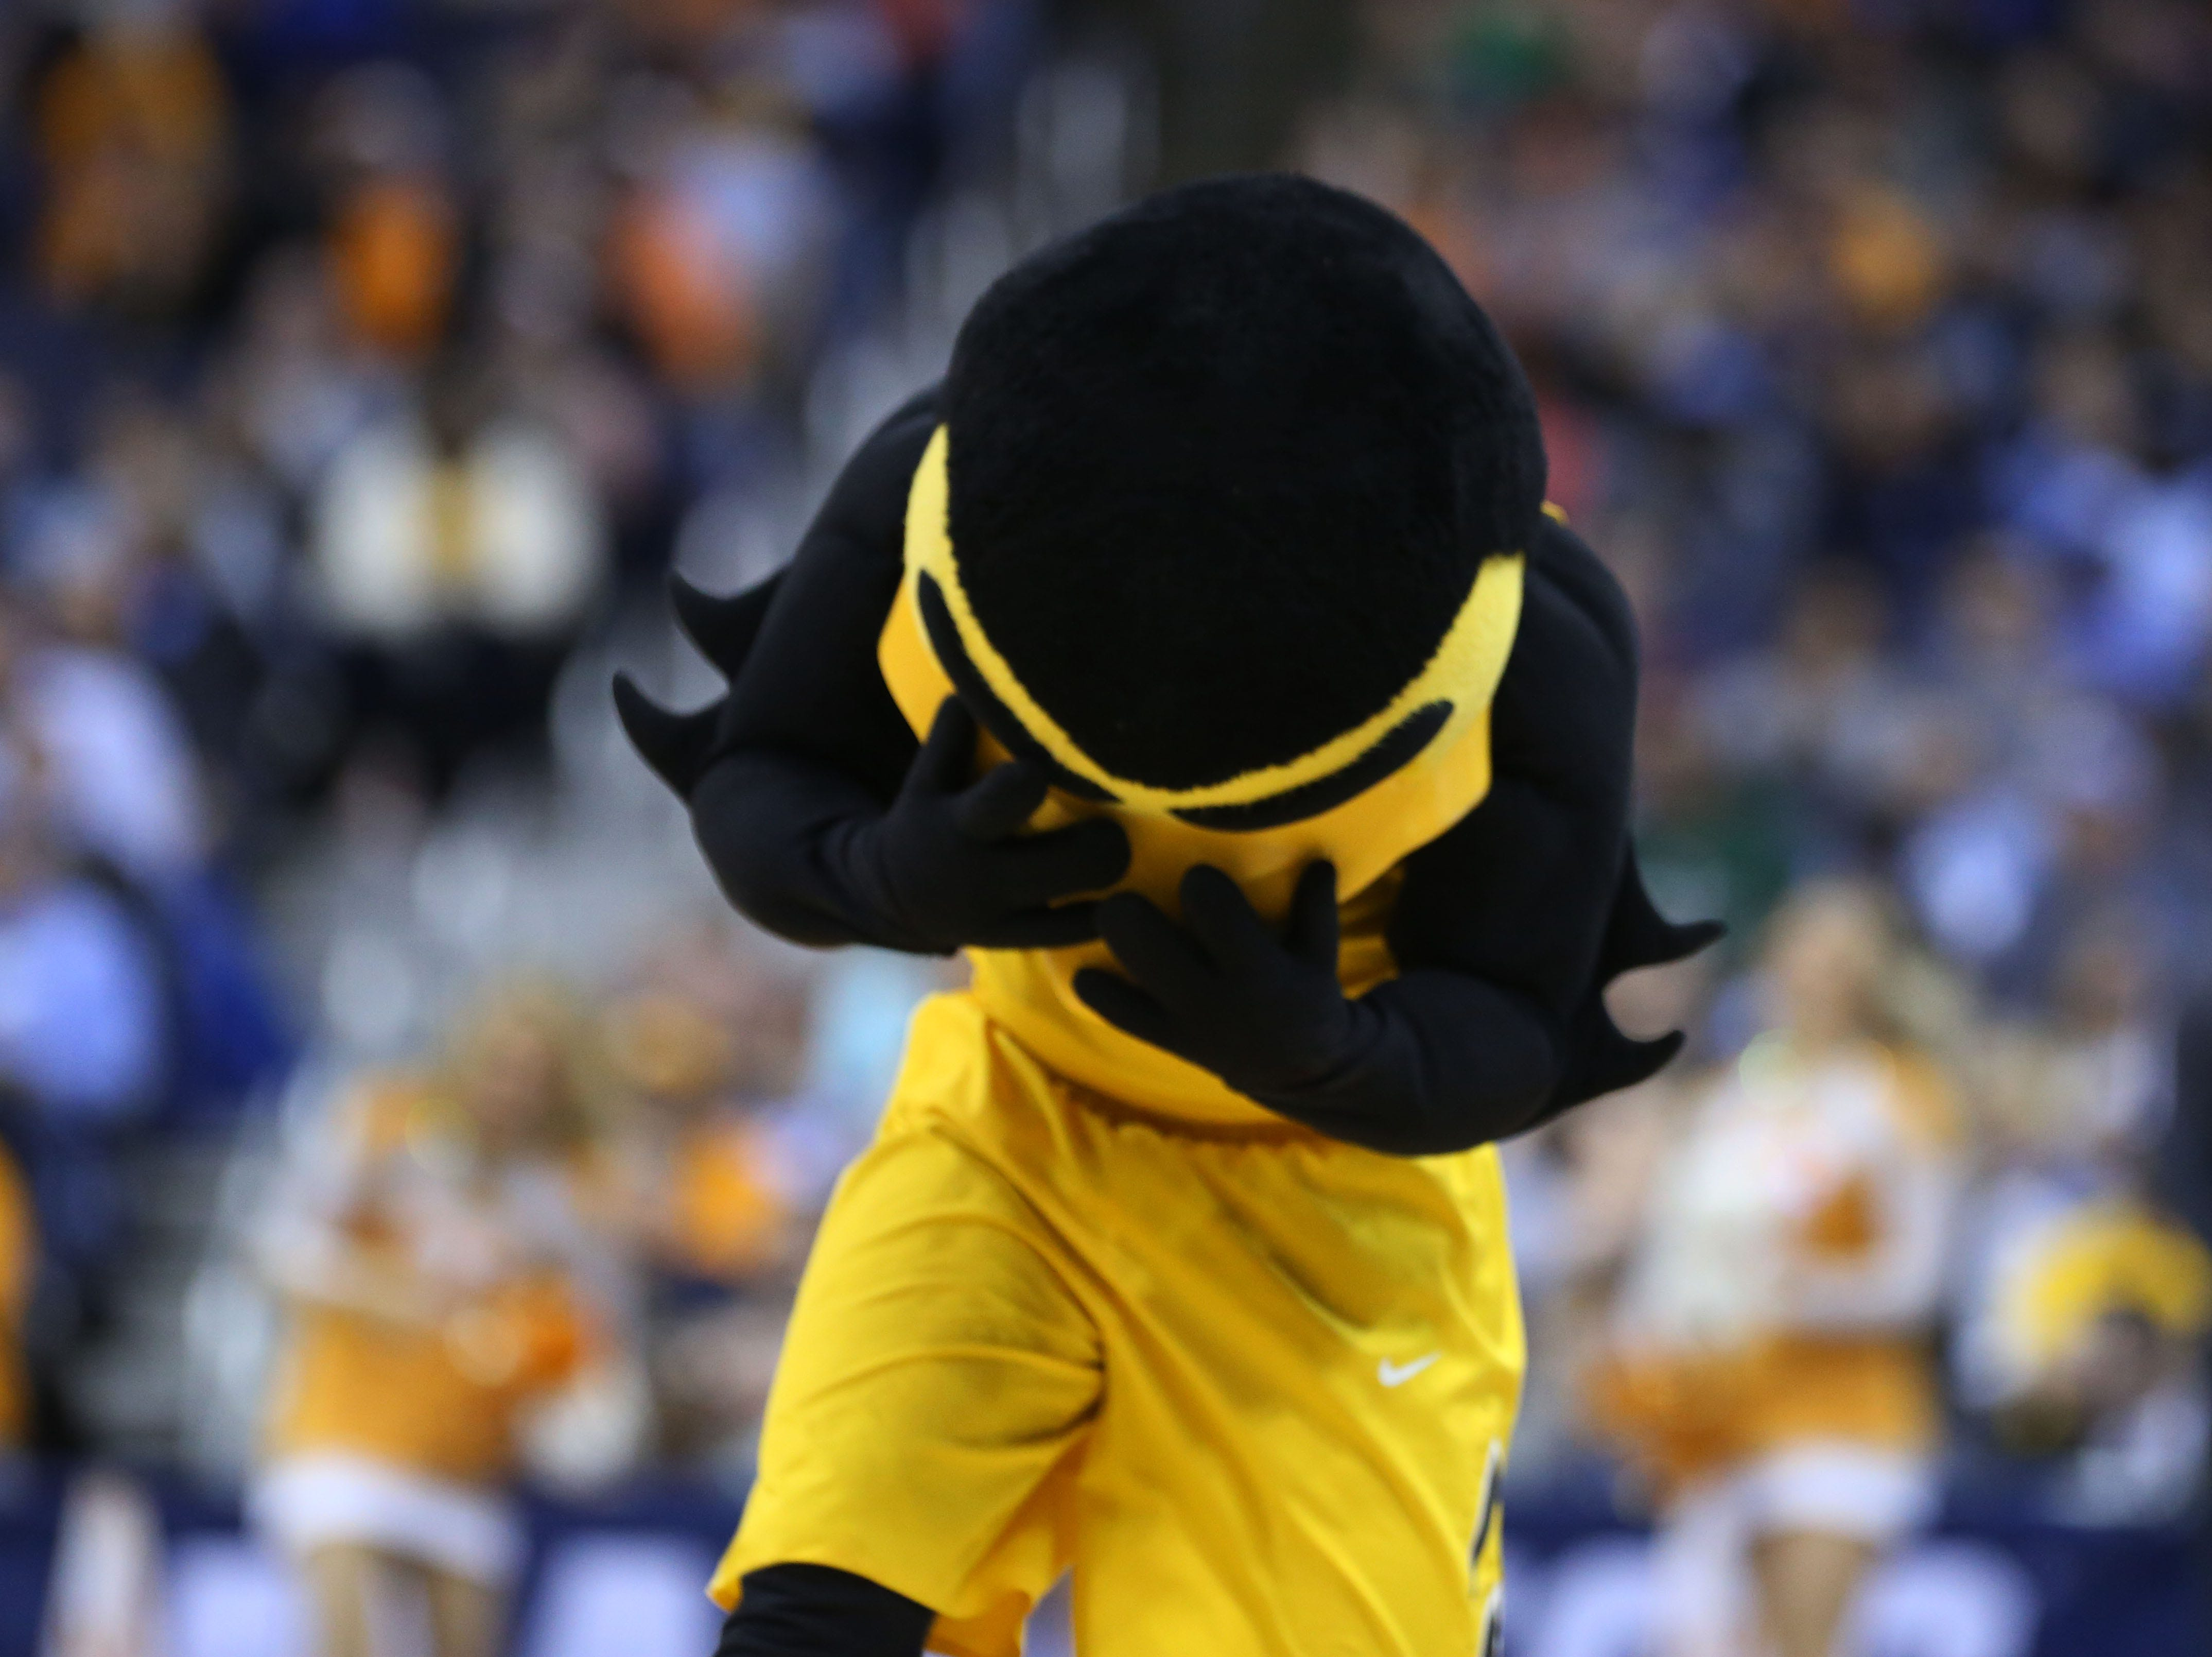 Iowa Hawkeyes mascot Herky the Hawk reacts to a play in the first half against the Tennessee Volunteers in the second round of the 2019 NCAA Tournament at Nationwide Arena.